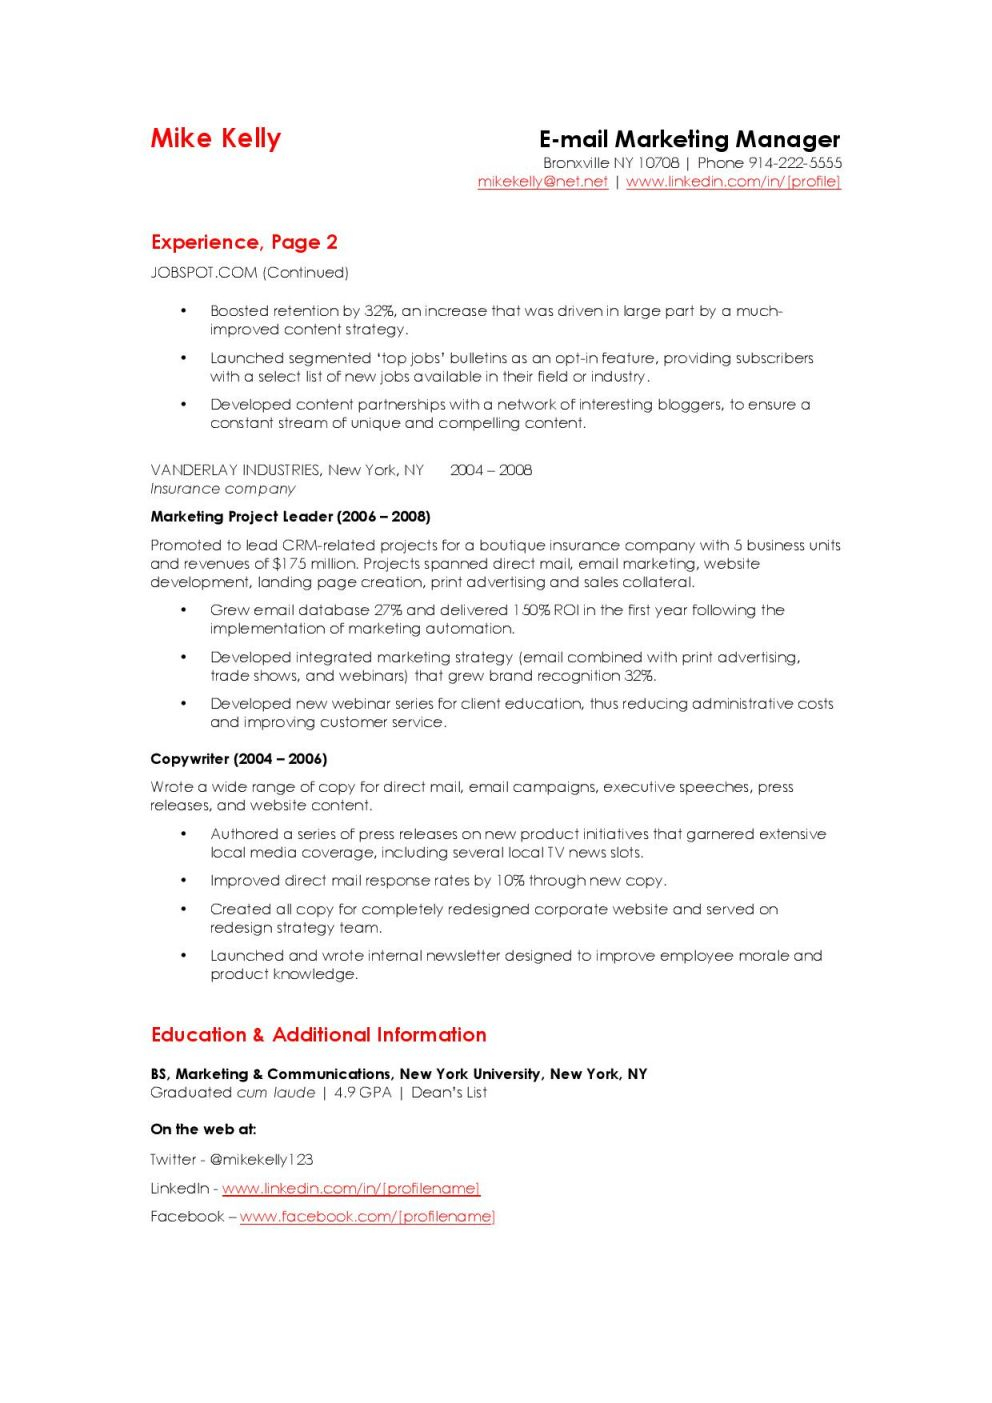 Product Marketing Manager Resume - Well Liked Email Marketing Manager Resume Zf38 – Documentaries for